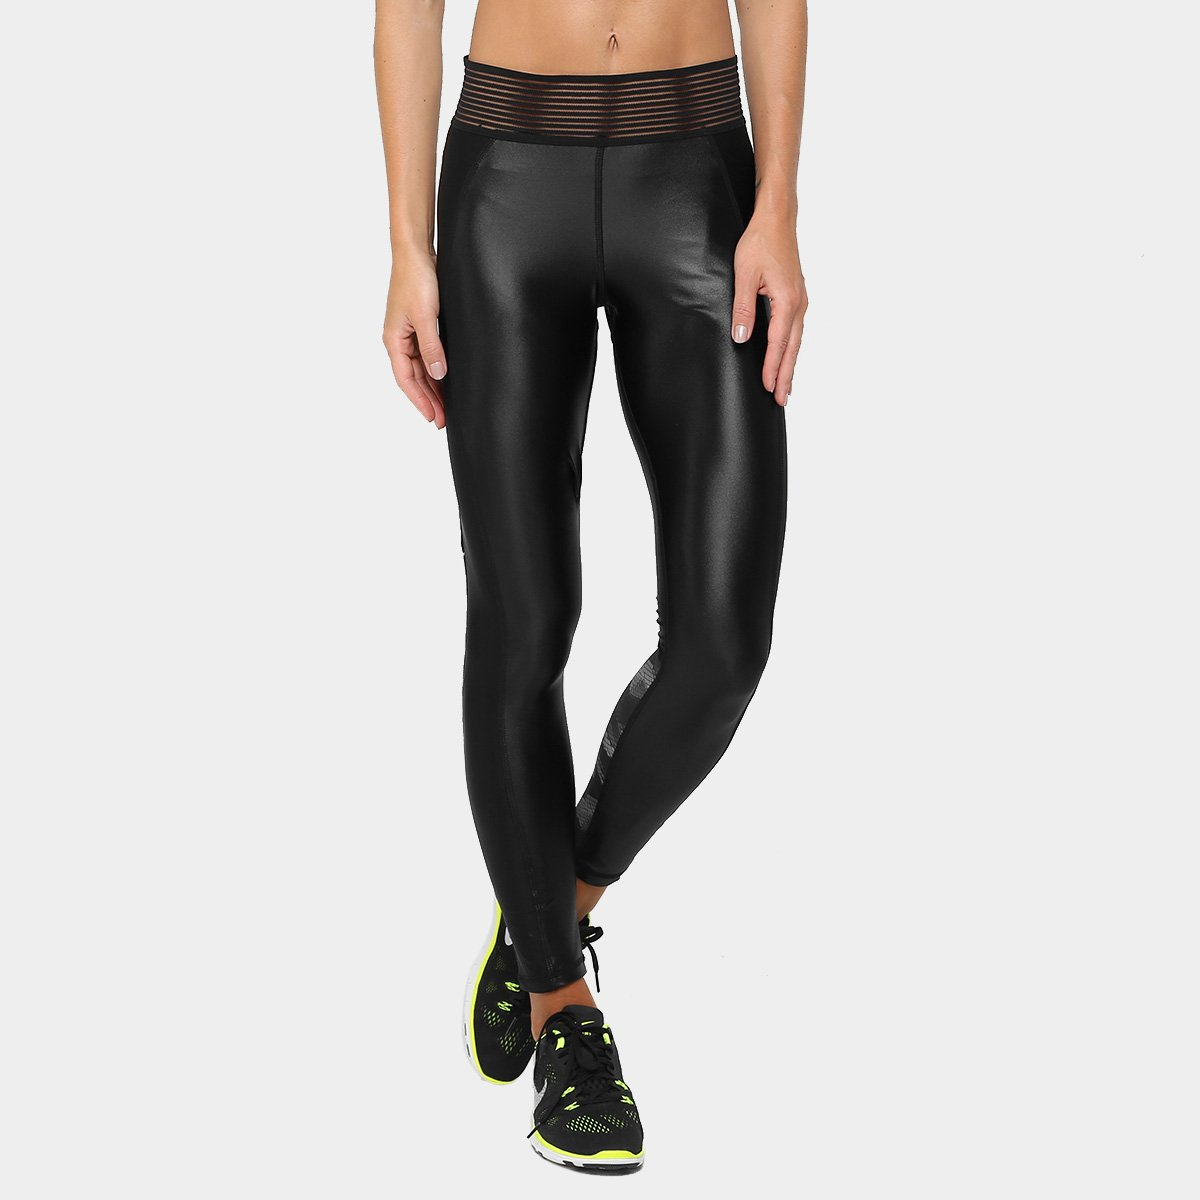 Calça Calça We e Chumbo Legging Active We Fit Active Legging Preto Feminina Fit CxqC4grI